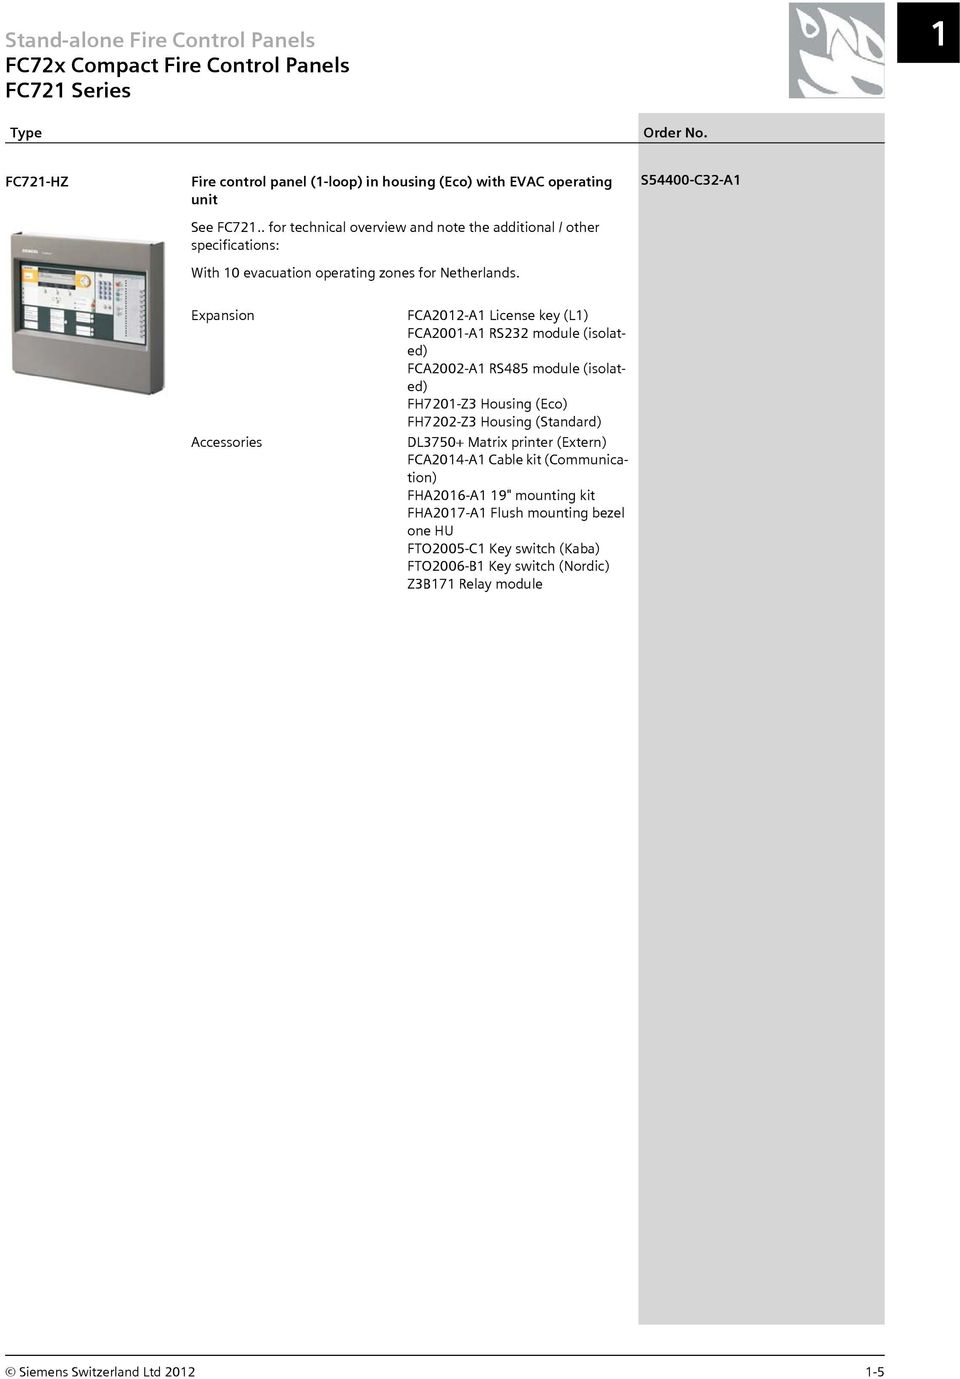 System Ebl128 Panasonic Electric Works Europe Ag Cerberus Pro Product Catalog Pdf S54400 C32 A1 Expansion Fca2012 License Key L1 Fca2001